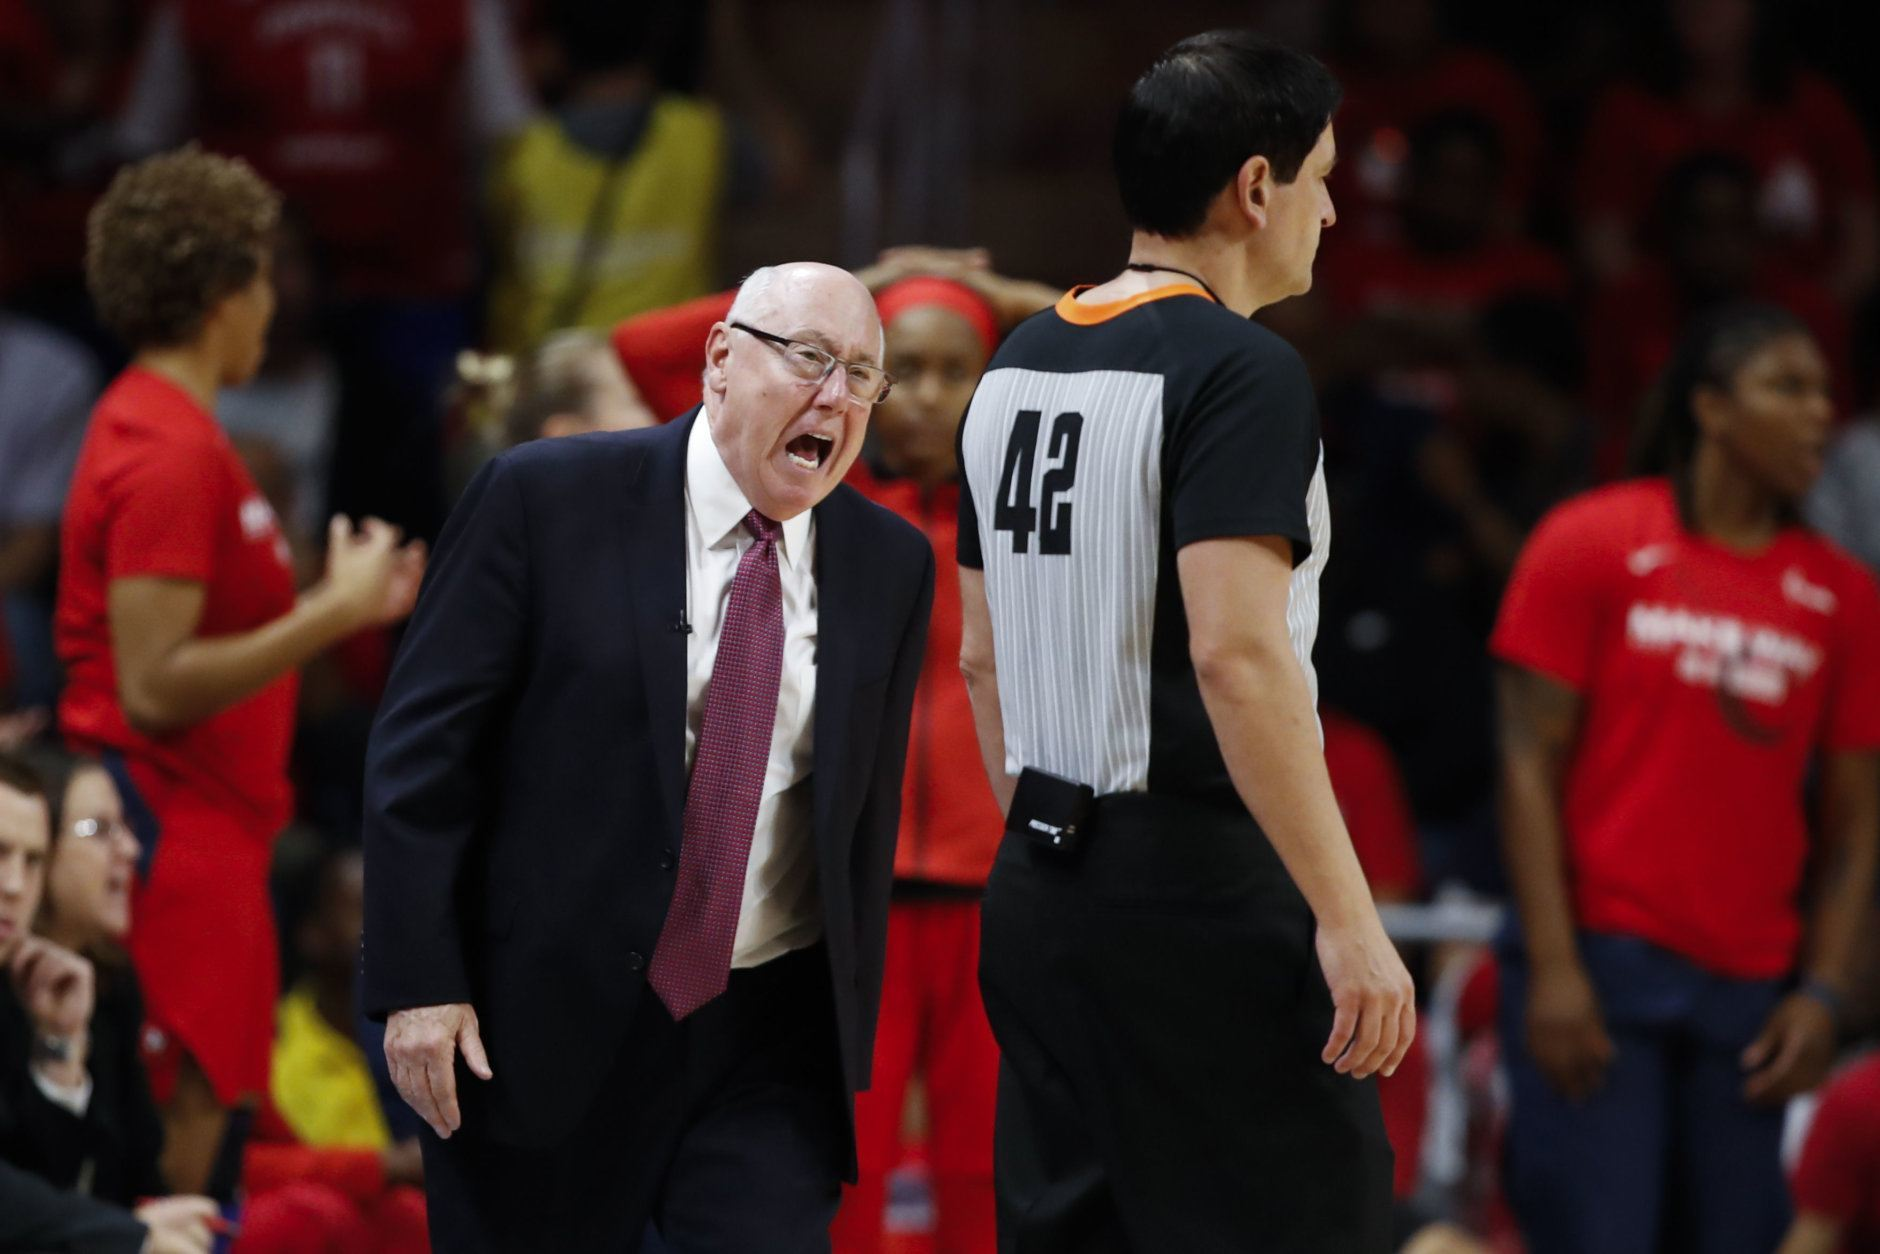 Washington Mystics head coach Mike Thibault talks to a referee during the second half of Game 5 of basketball's WNBA Finals against the Connecticut Sun, Thursday, Oct. 10, 2019, in Washington. (AP Photo/Alex Brandon)